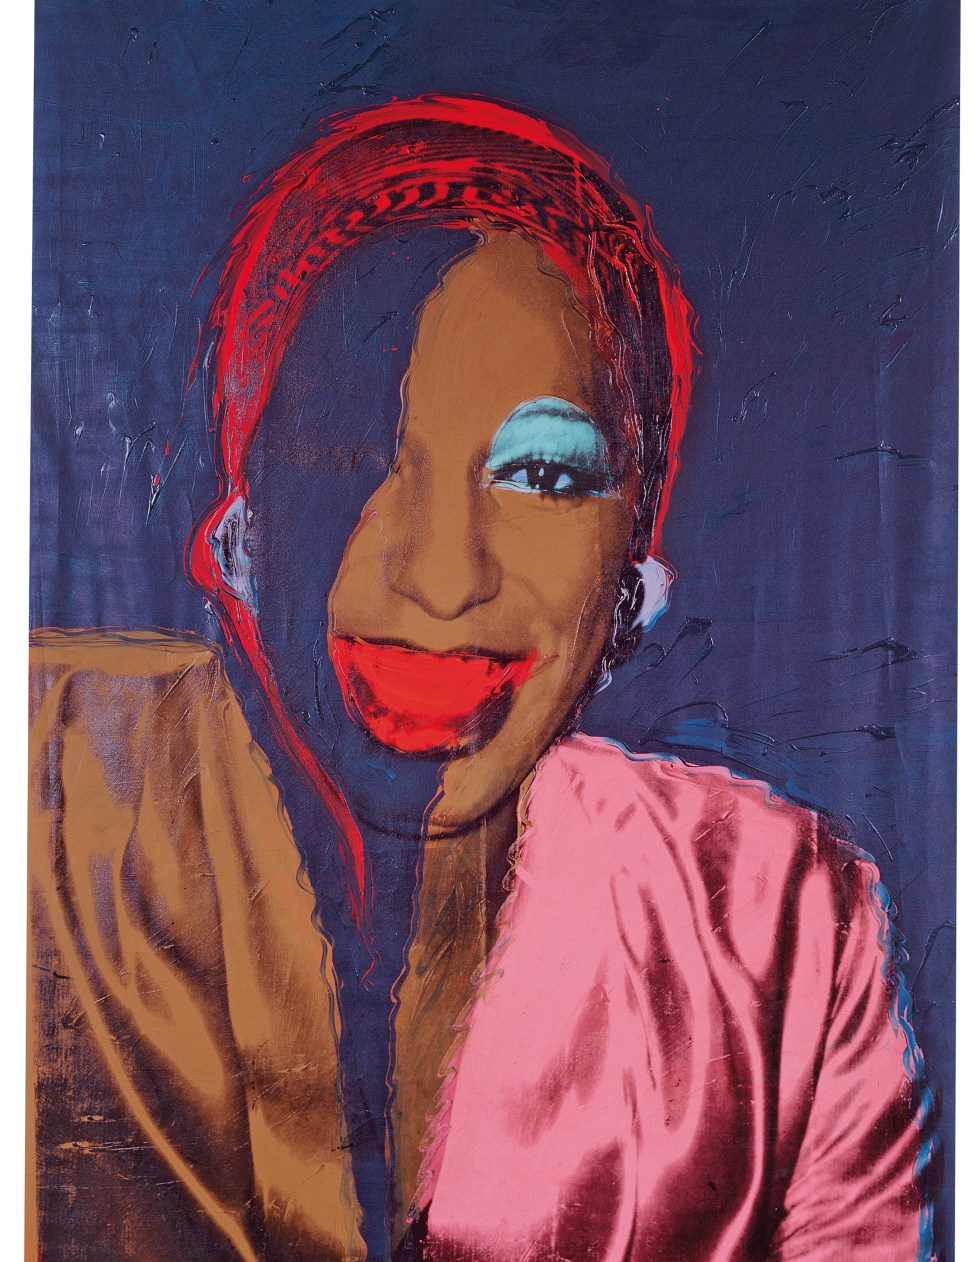 Andy Warhol (1928–1987), Ladies and Gentlemen (Wilhelmina Ross), 1975. Acrylic and silkscreen ink on linen, 120 x 80 in. (304.8 x 203.2 cm). Fondation Louis Vuitton, Paris © The Andy Warhol Foundation for the Visual Arts, Inc. / Artists Rights Society (ARS) New York